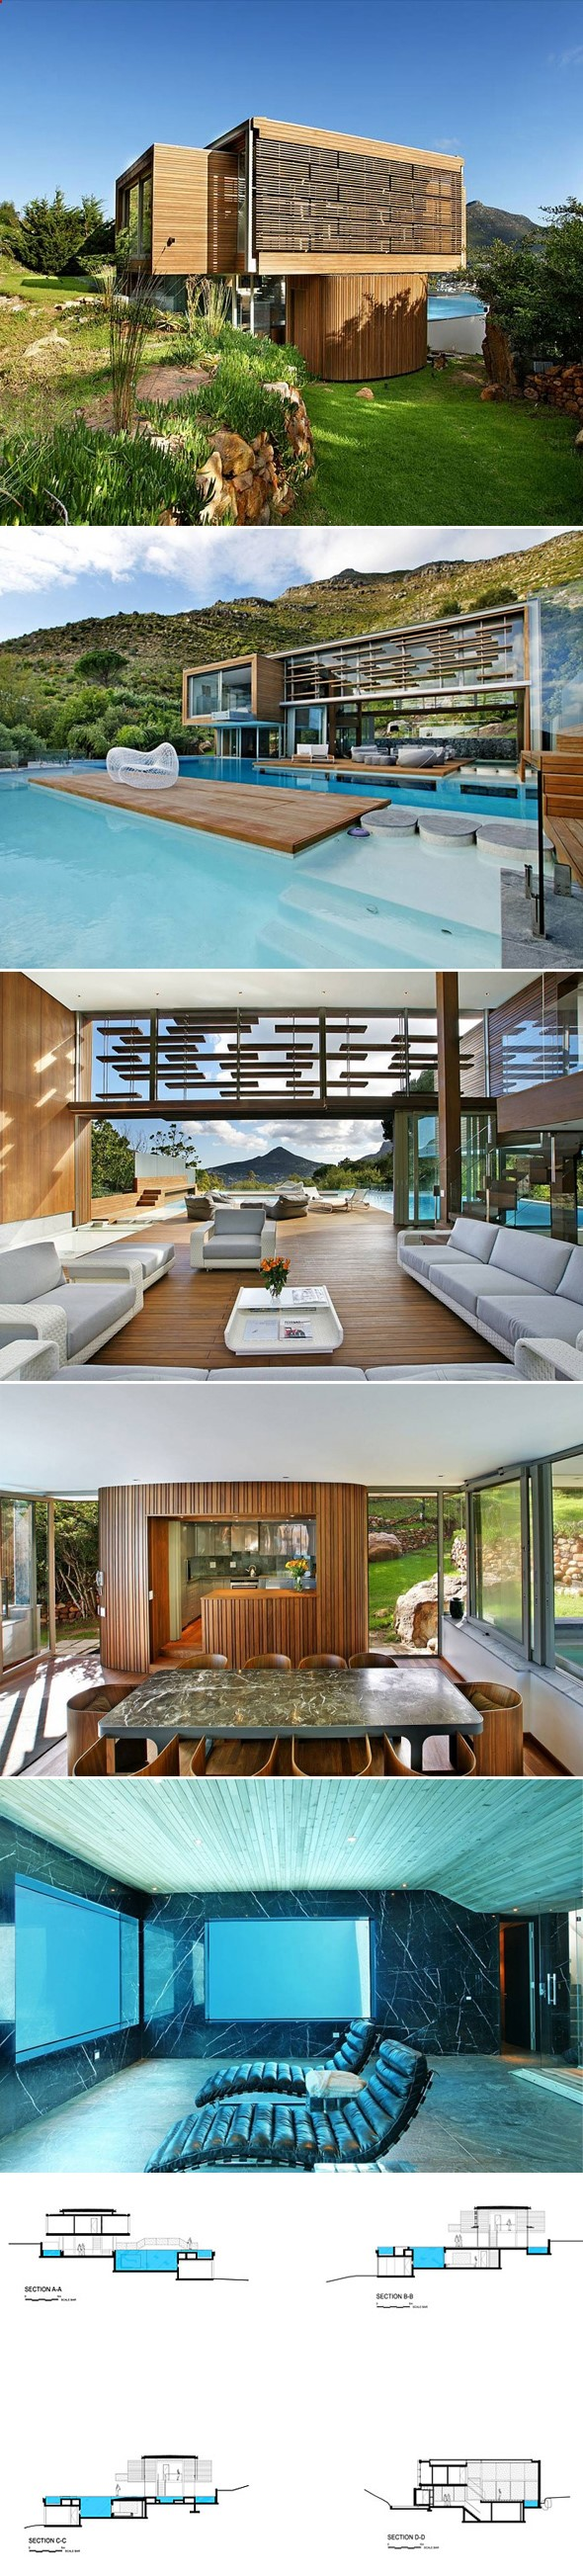 Container house spa house by metropolis design cape town sa who